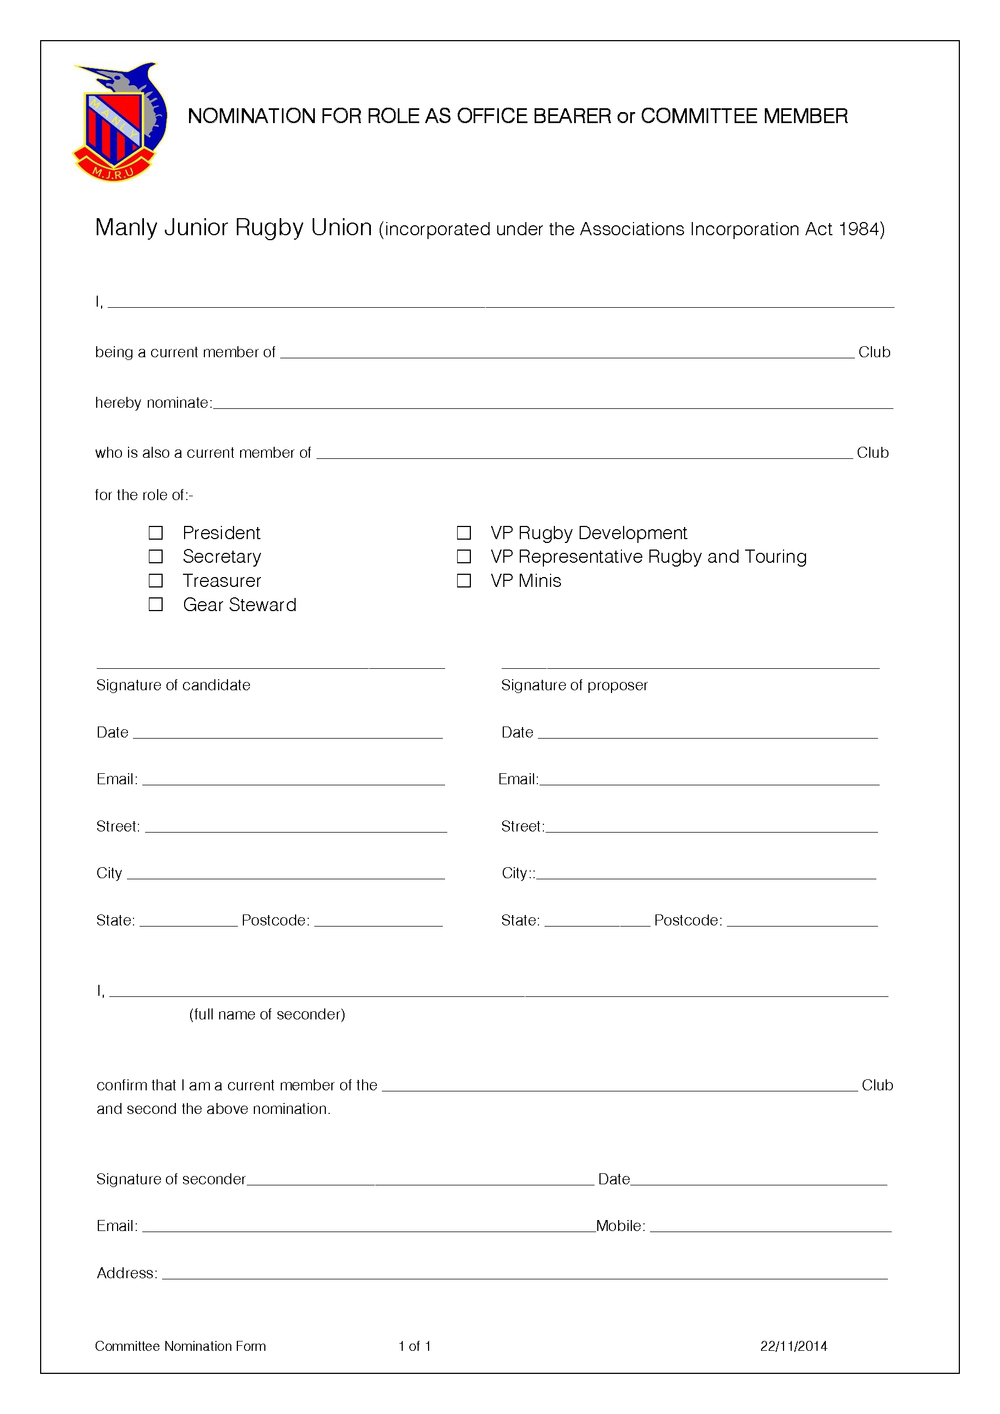 MJRU Committee Nomination Form.png